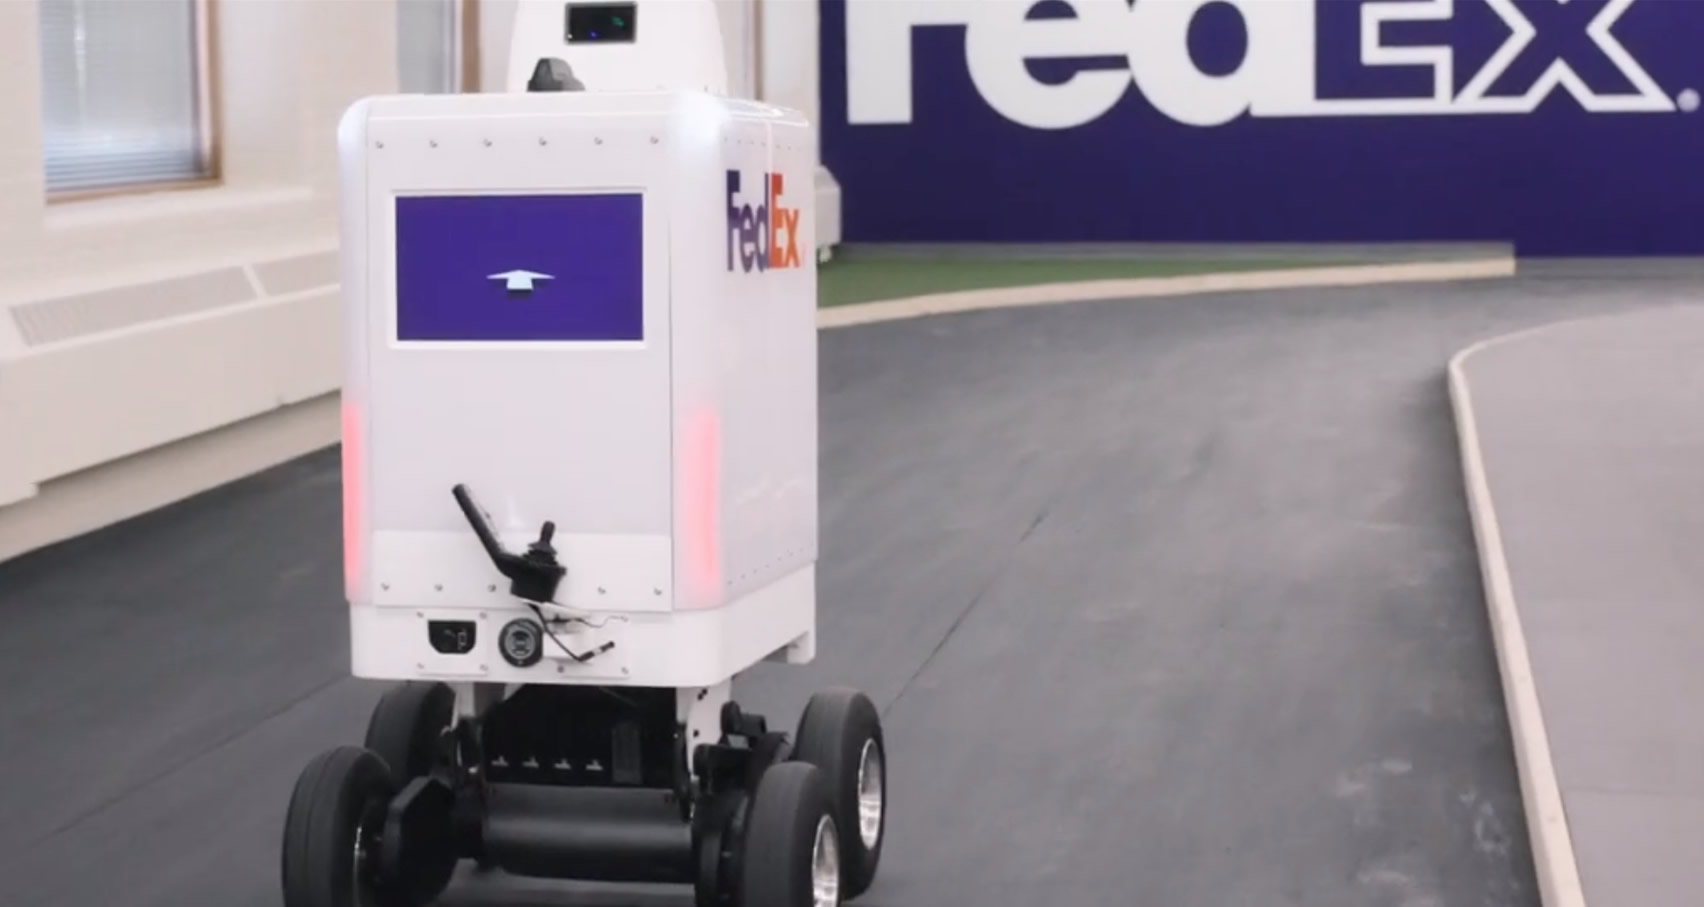 Delivery bot has an innovative compartment that allows delivery of hot and cold items.